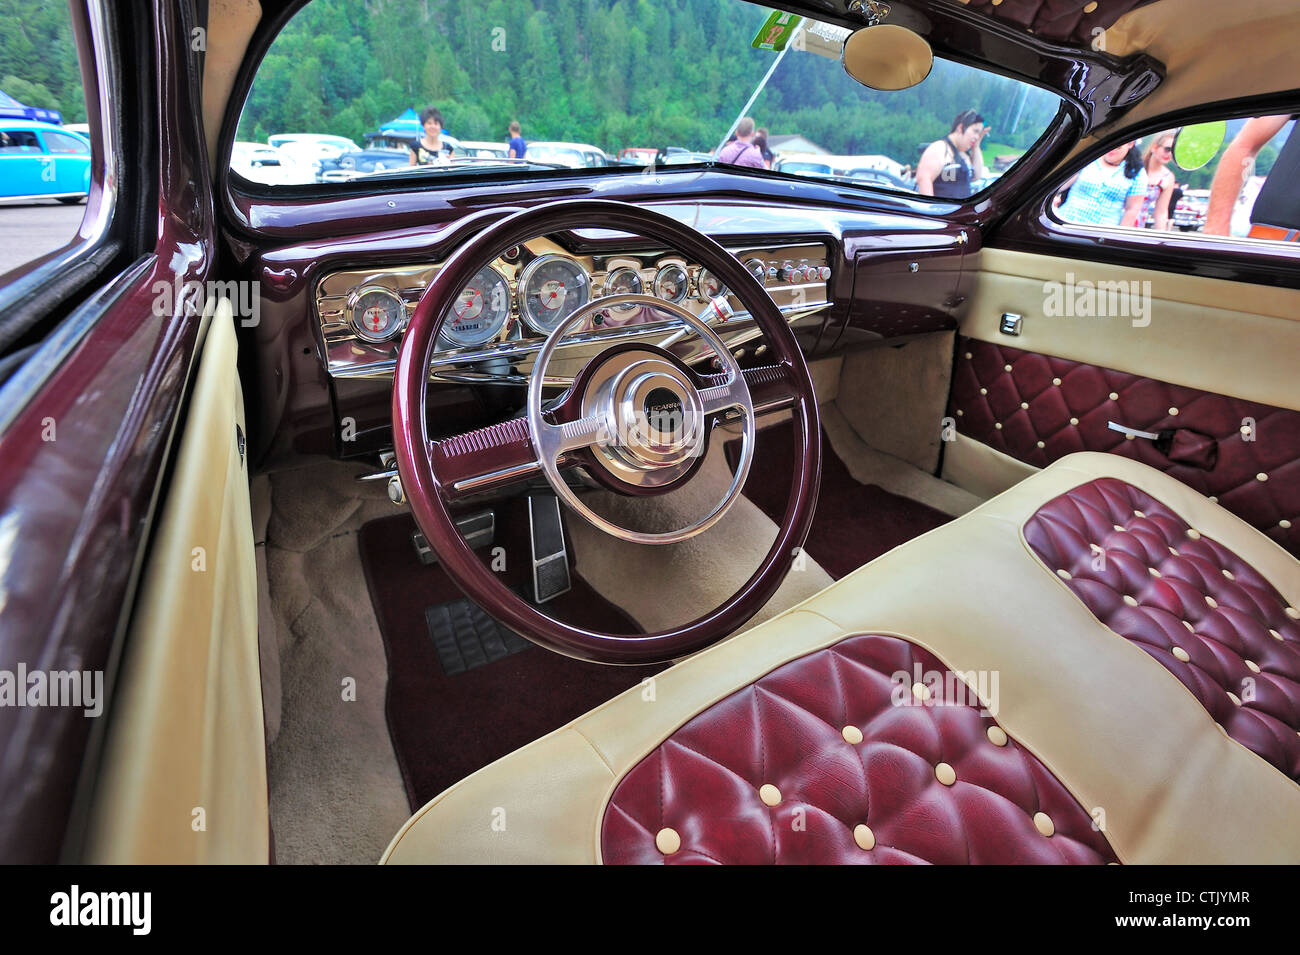 interior of a 1950s car stock photo royalty free image 49589367 alamy. Black Bedroom Furniture Sets. Home Design Ideas